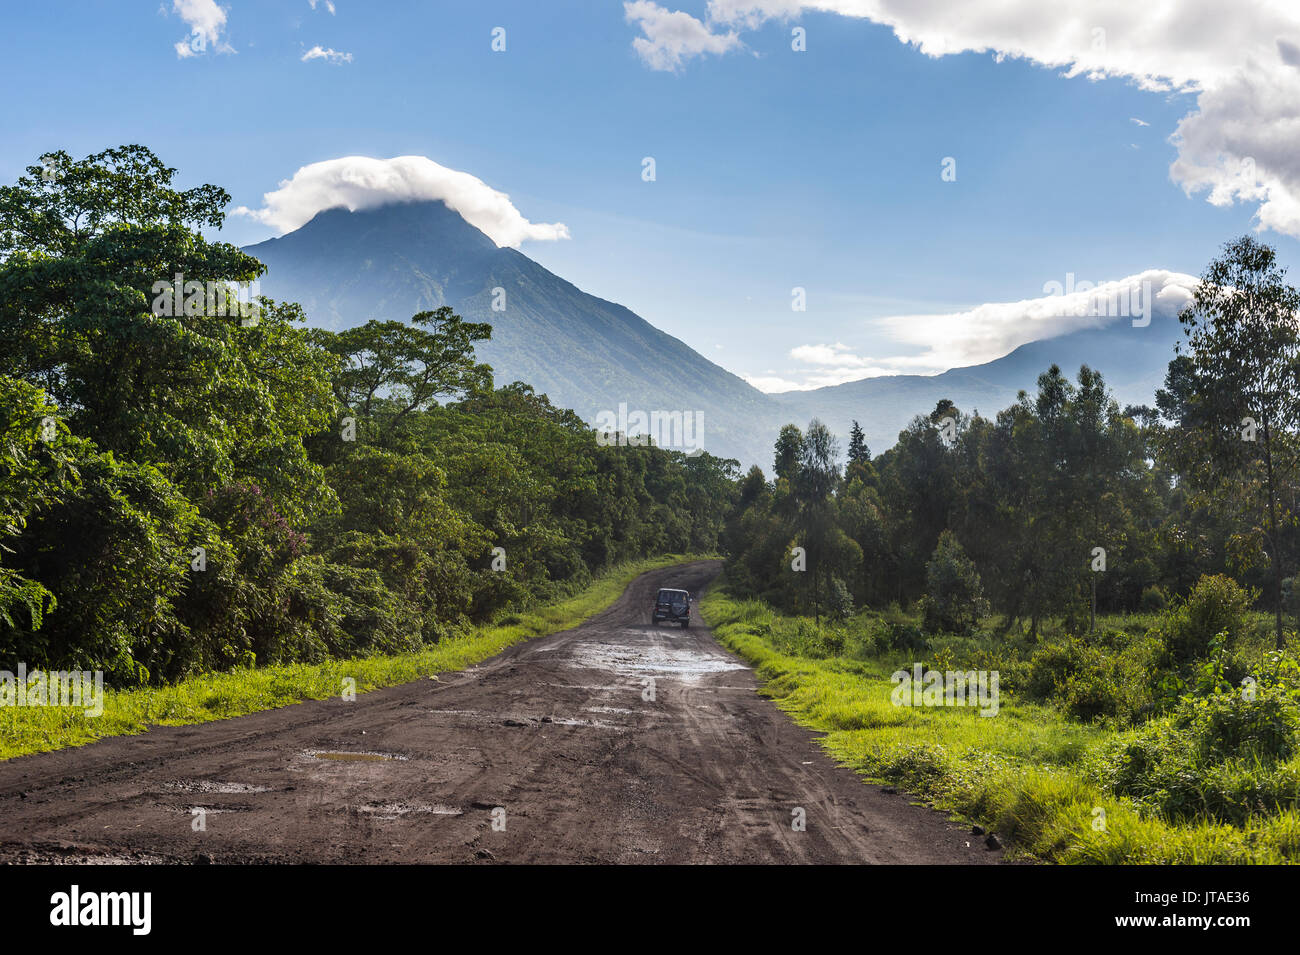 virunga national park essay Science essays: threat of the mountain gorilla search browse essays join now login support tweet into a national park for the conservation of mountain gorillas the albert national park, later named the virunga national park, was the first park established in africa (ngowi.